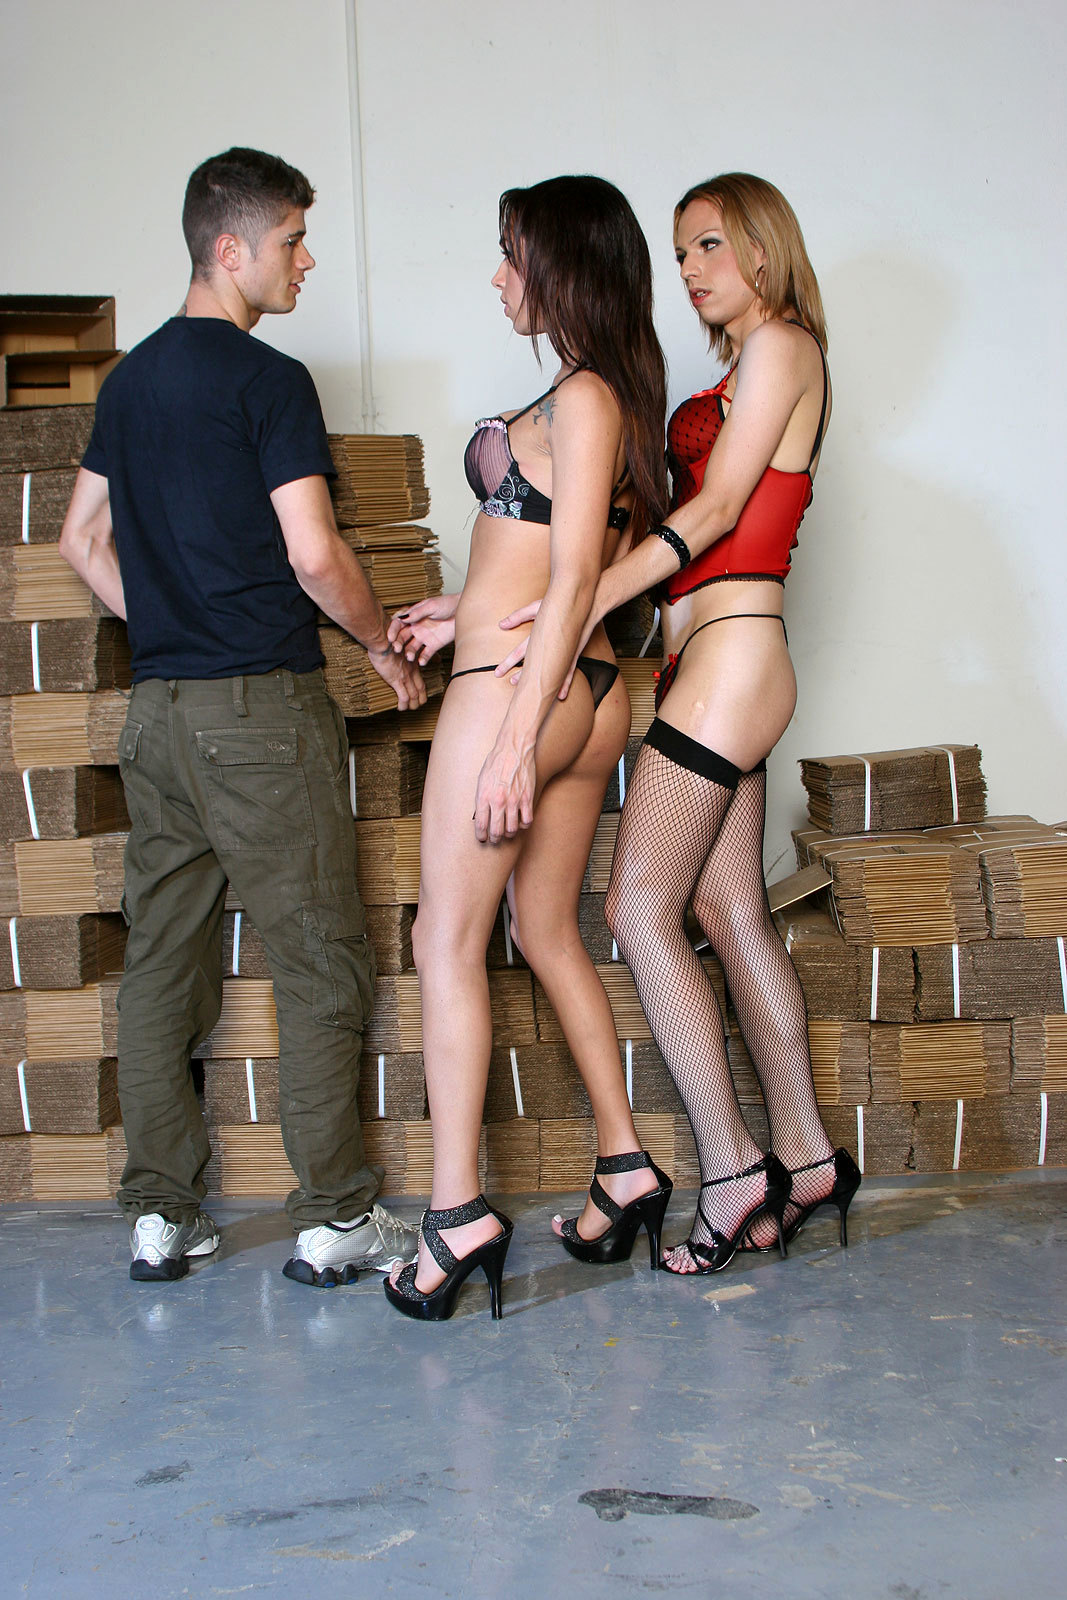 Tranny Warehouse Workers Alessandra Leite And Carol Vendrom